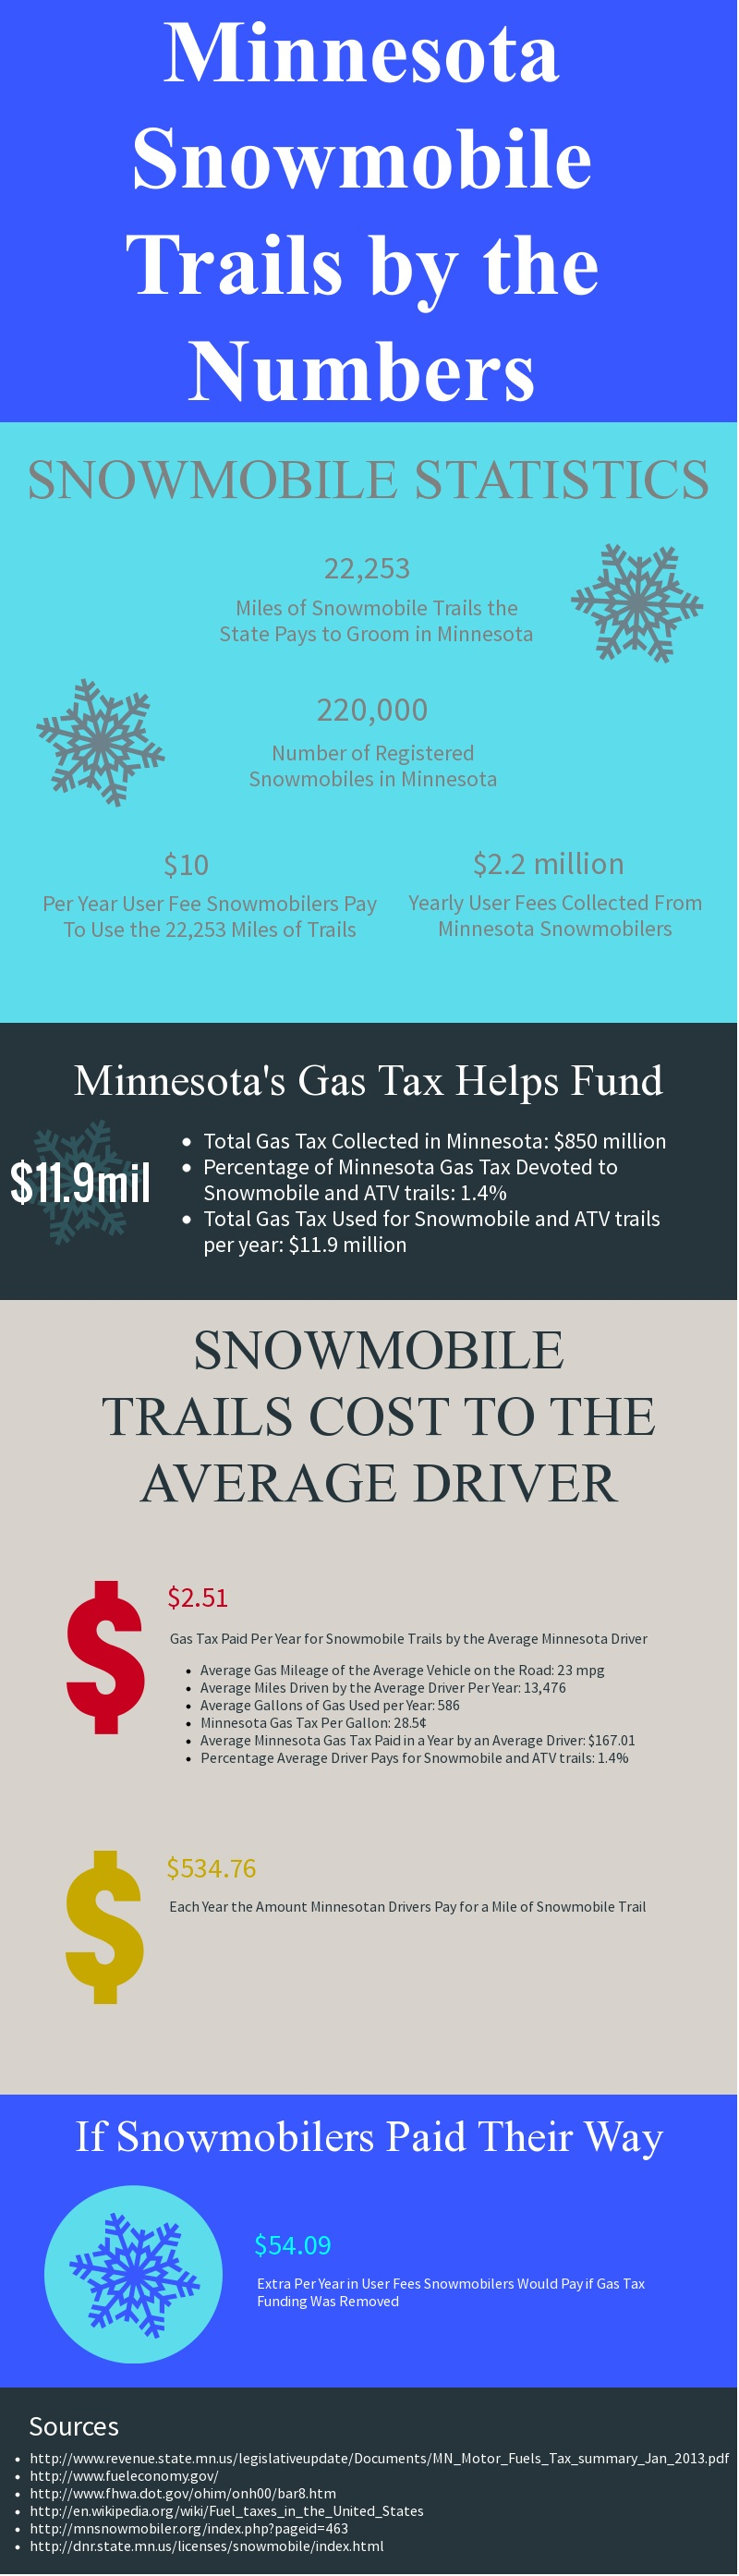 snowmobile use fees in minnesota